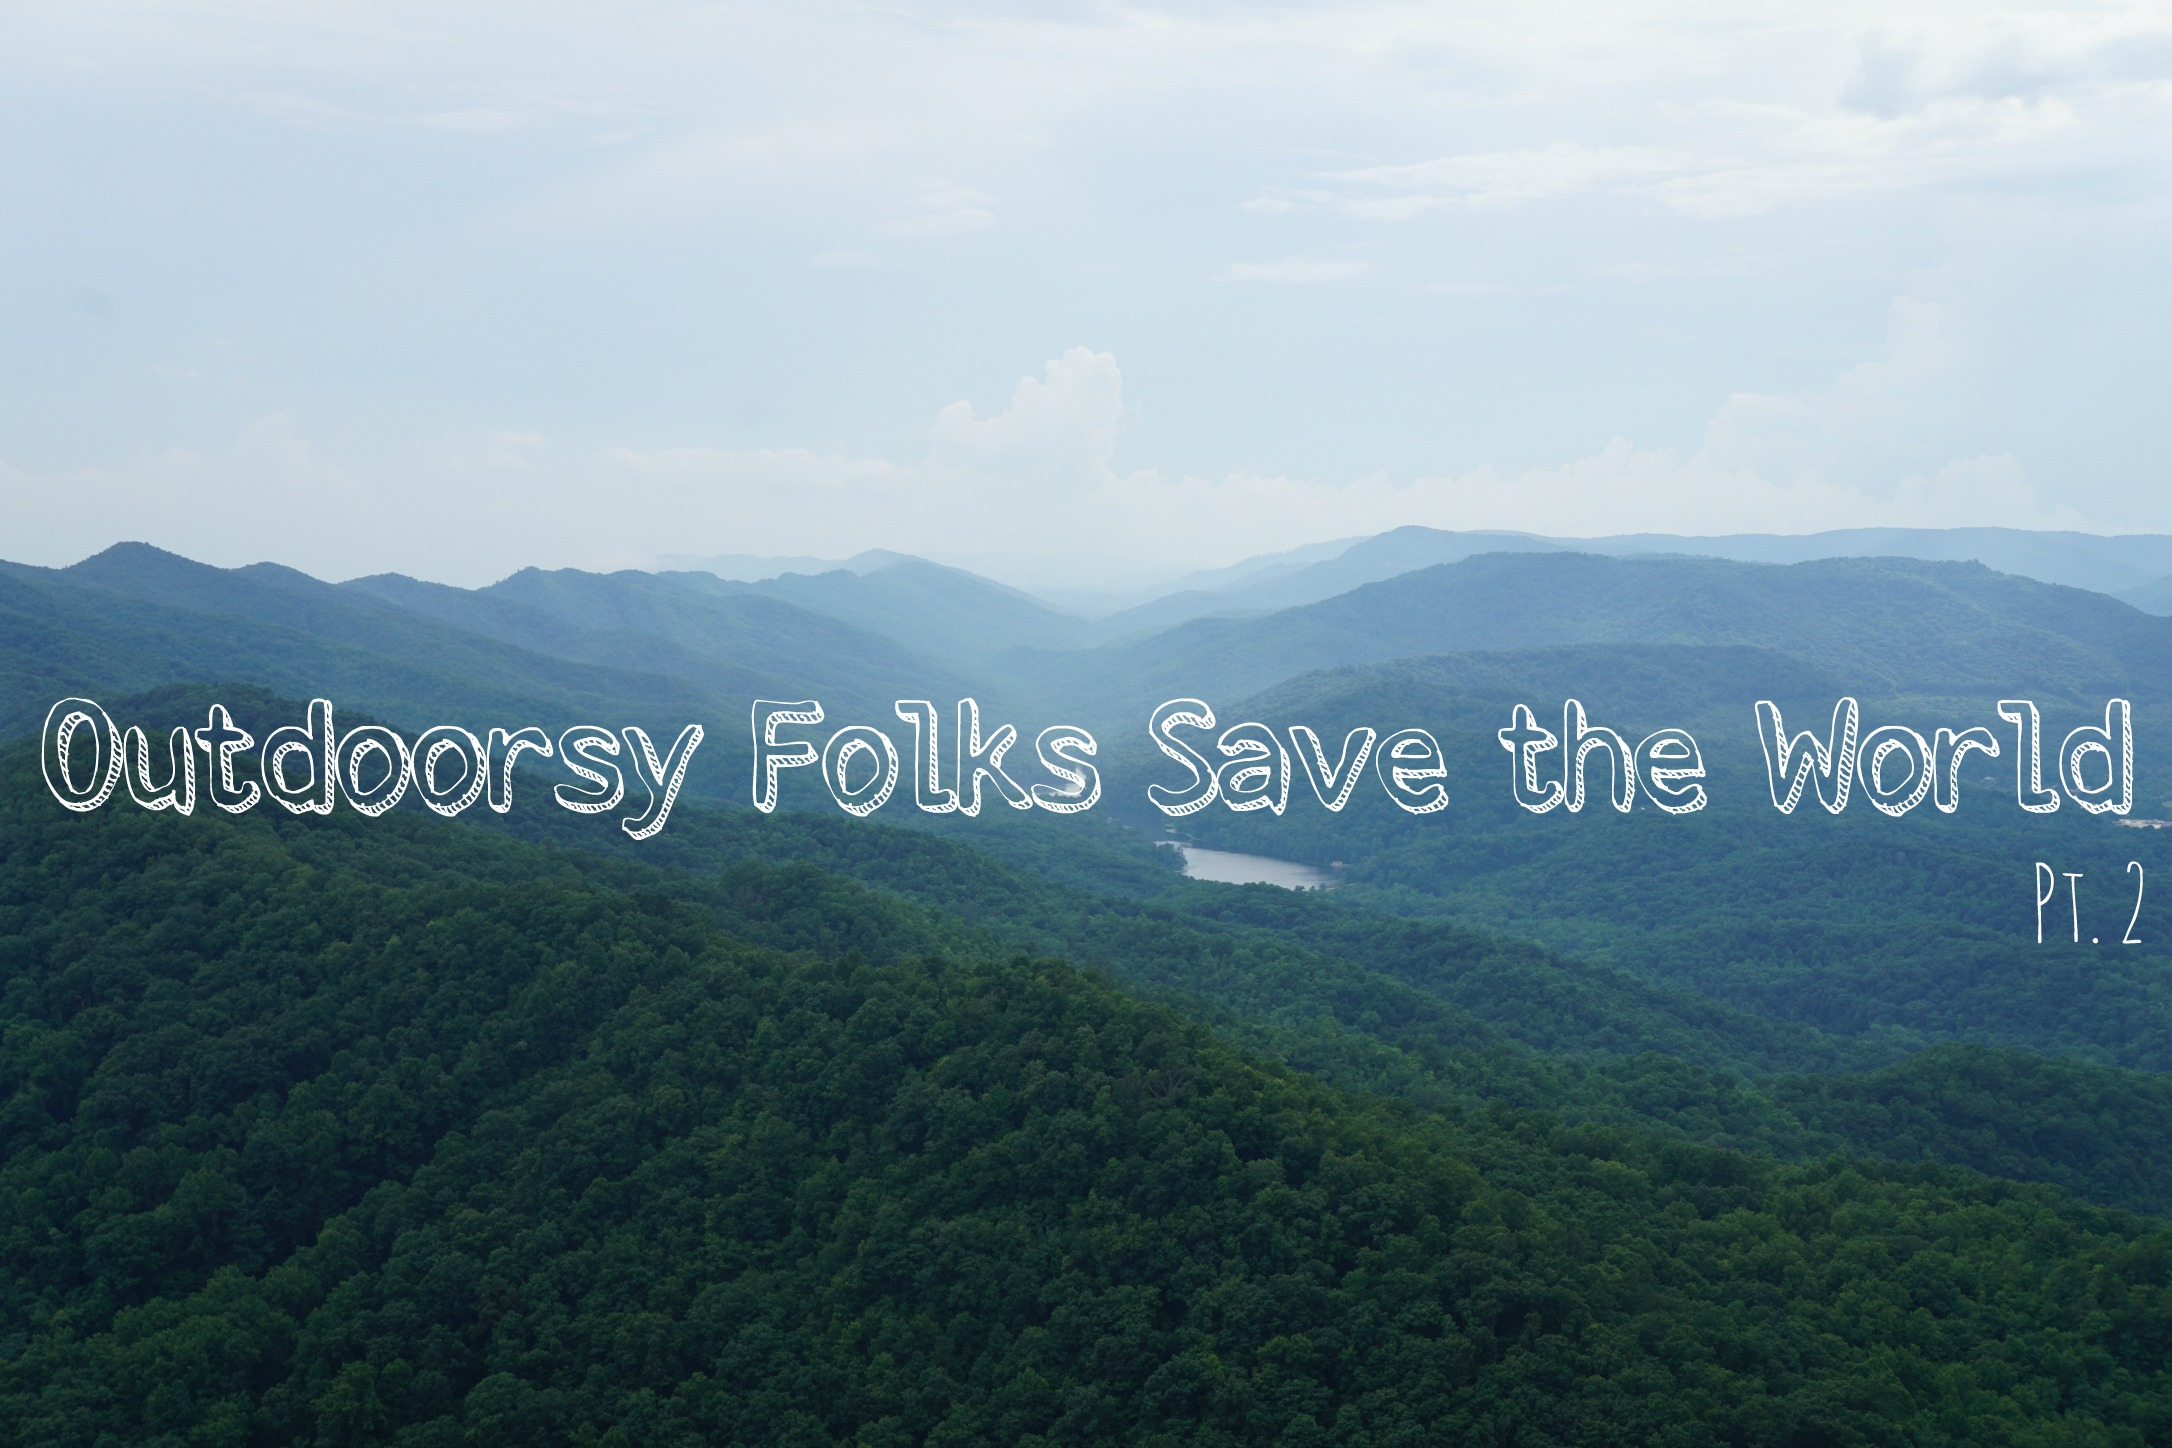 Outdoorsy Folks Save the World Pt. 2: The Fight to Save Public Lands